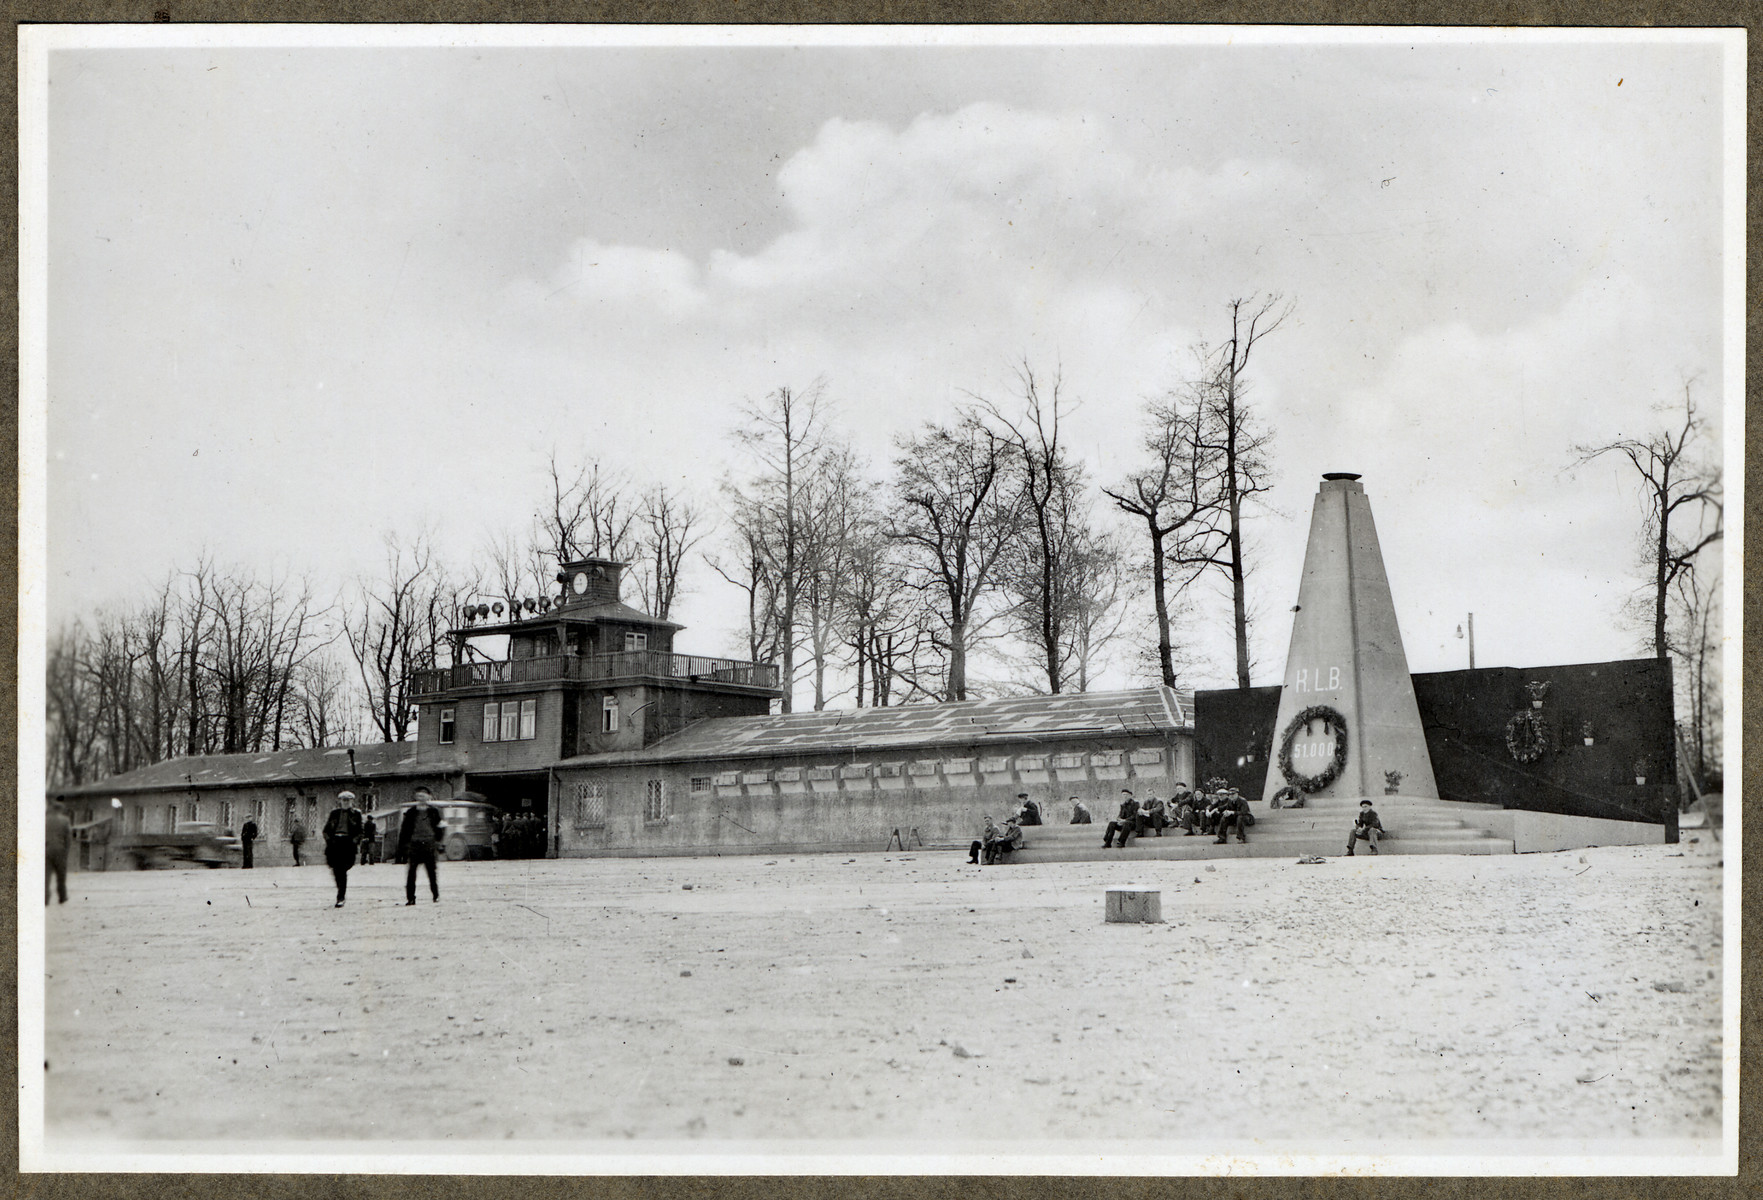 View of the entrance to the Buchenwald concentration camp including the memorial to the victims erected by American troops.